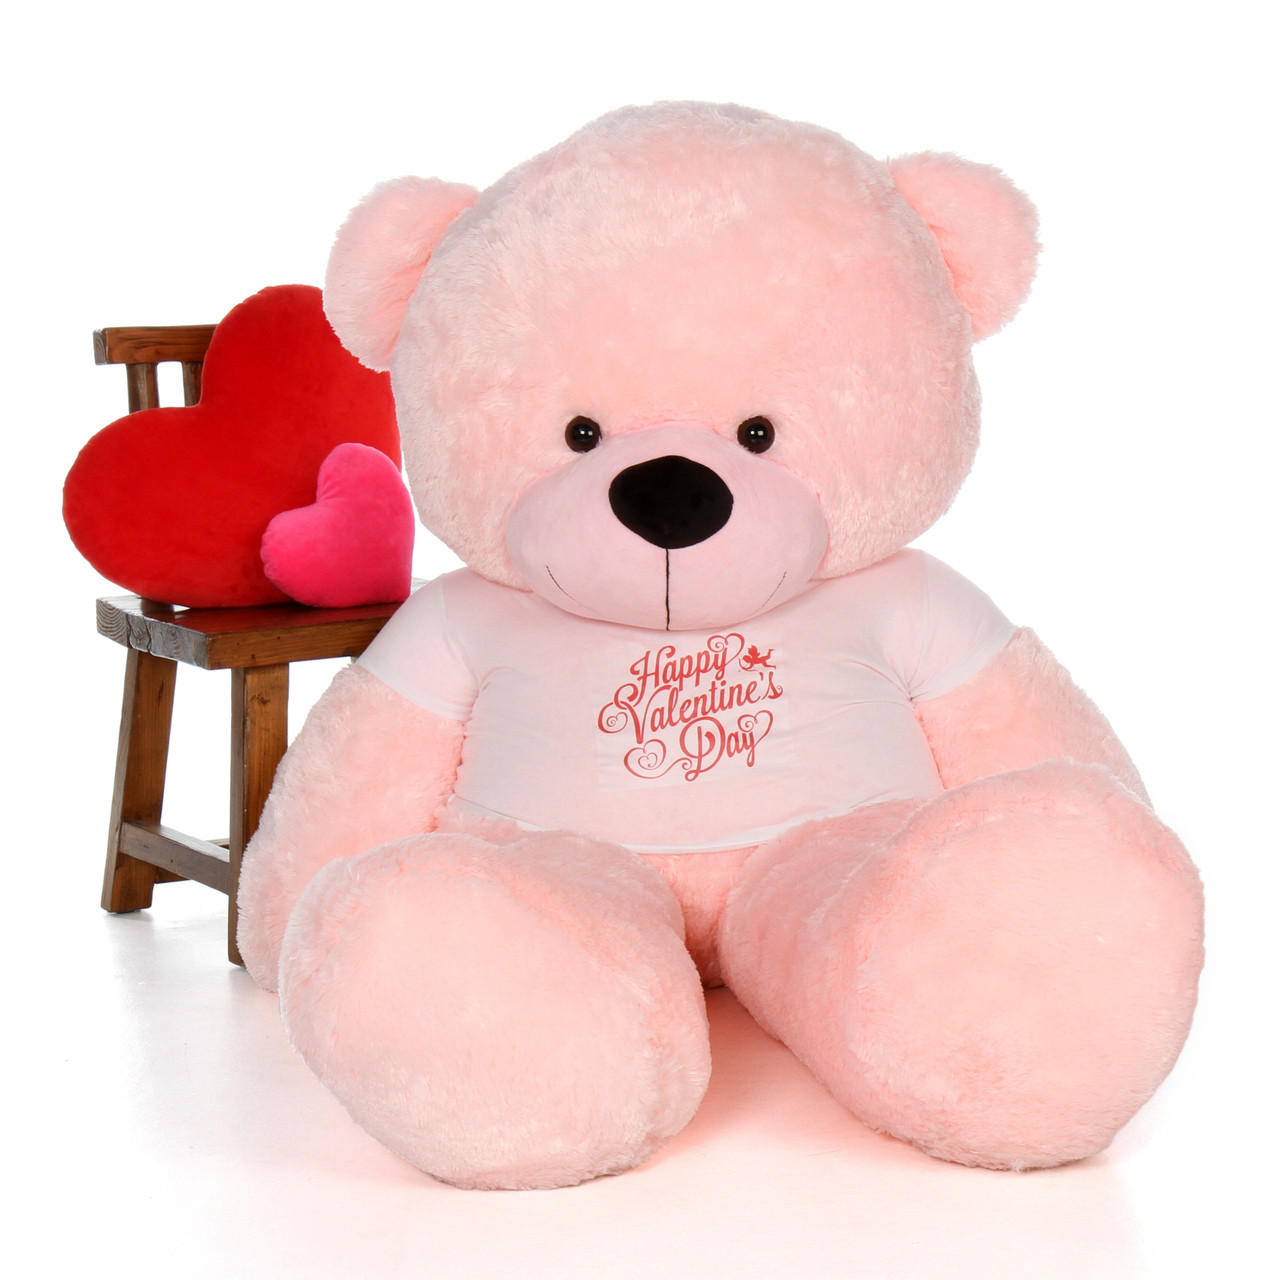 72in Lady Cuddles Pink Massive Teddy Bear in Happy Valentine's Day Shirt